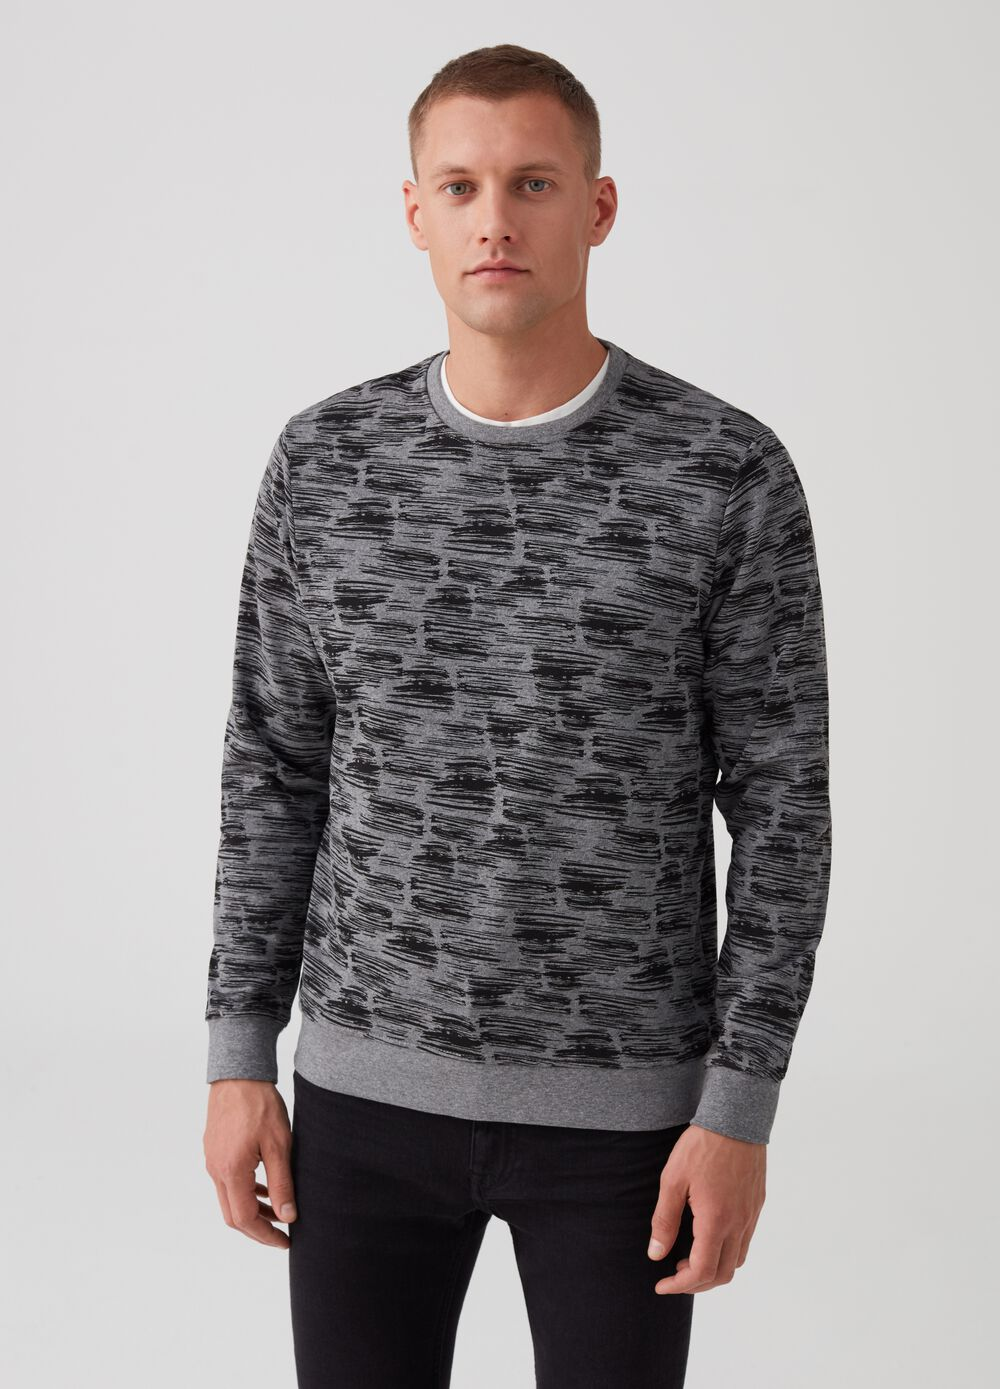 Sweatshirt with round neck and abstract print